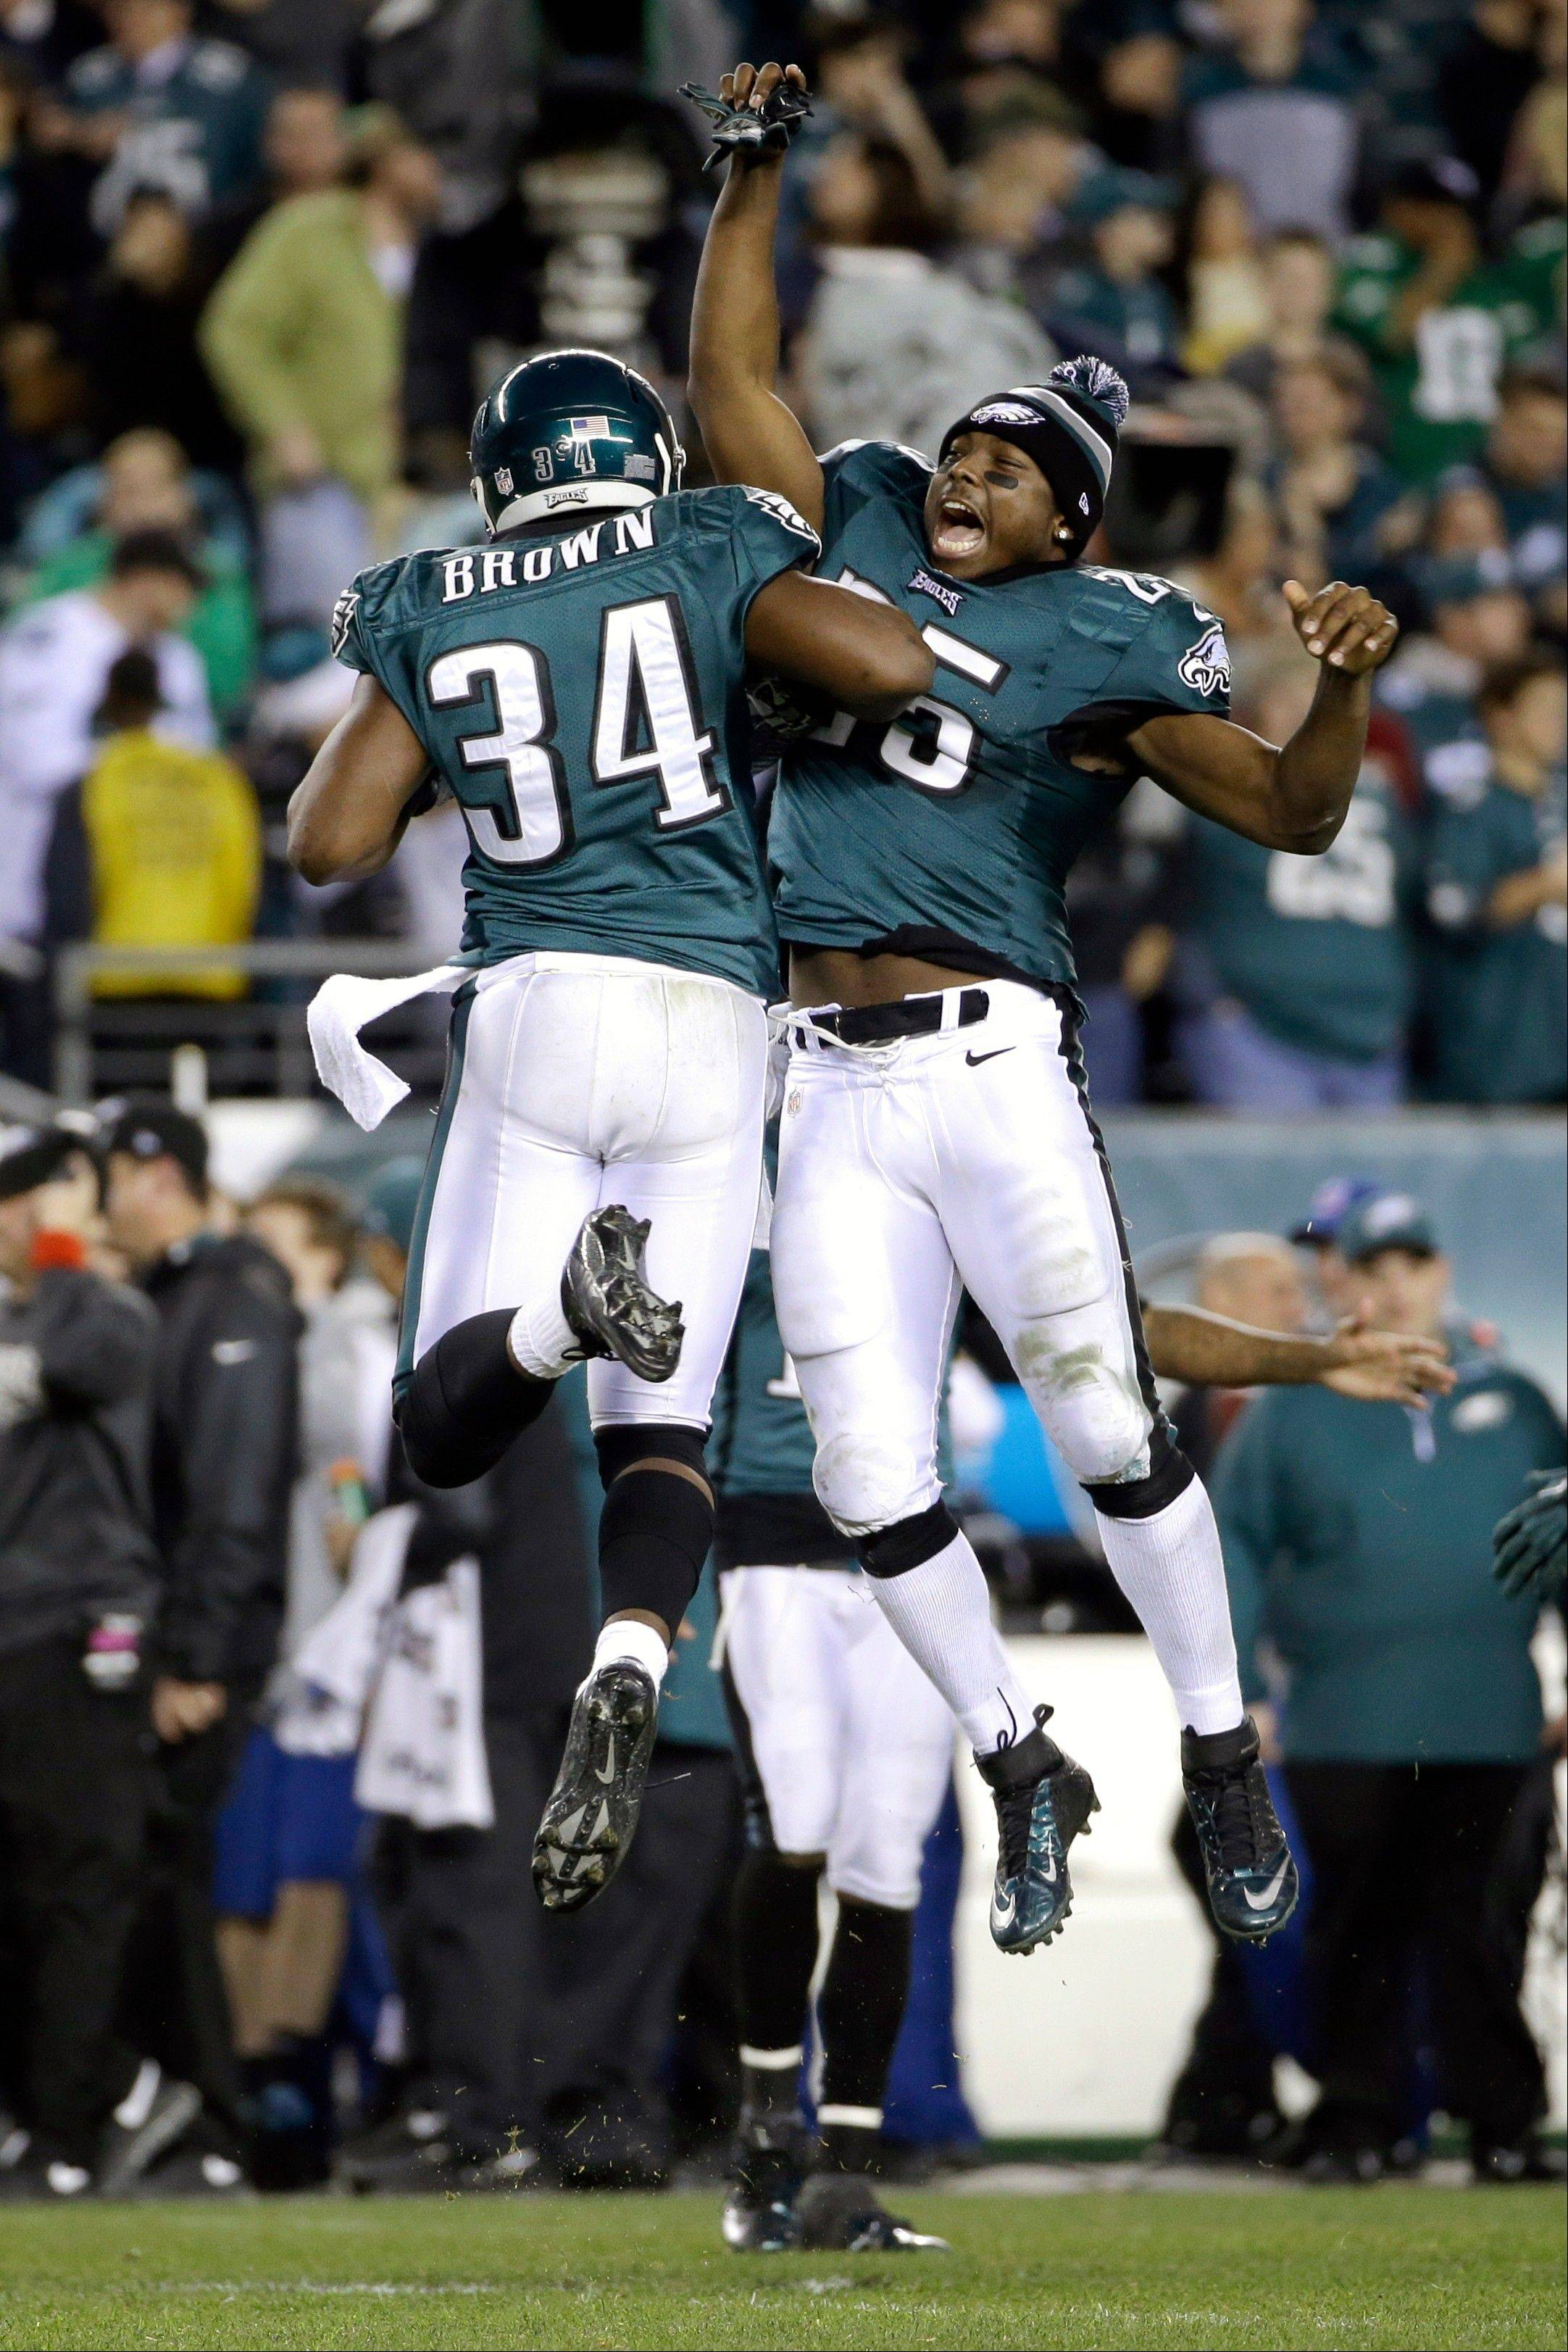 The Eagles' Bryce Brown and LeSean McCoy had plenty to celebrate during Sunday night's rout of the Bears: McCoy (133) and Brown (115) combined for 248 of Philadelphia's 289 rushing yards.